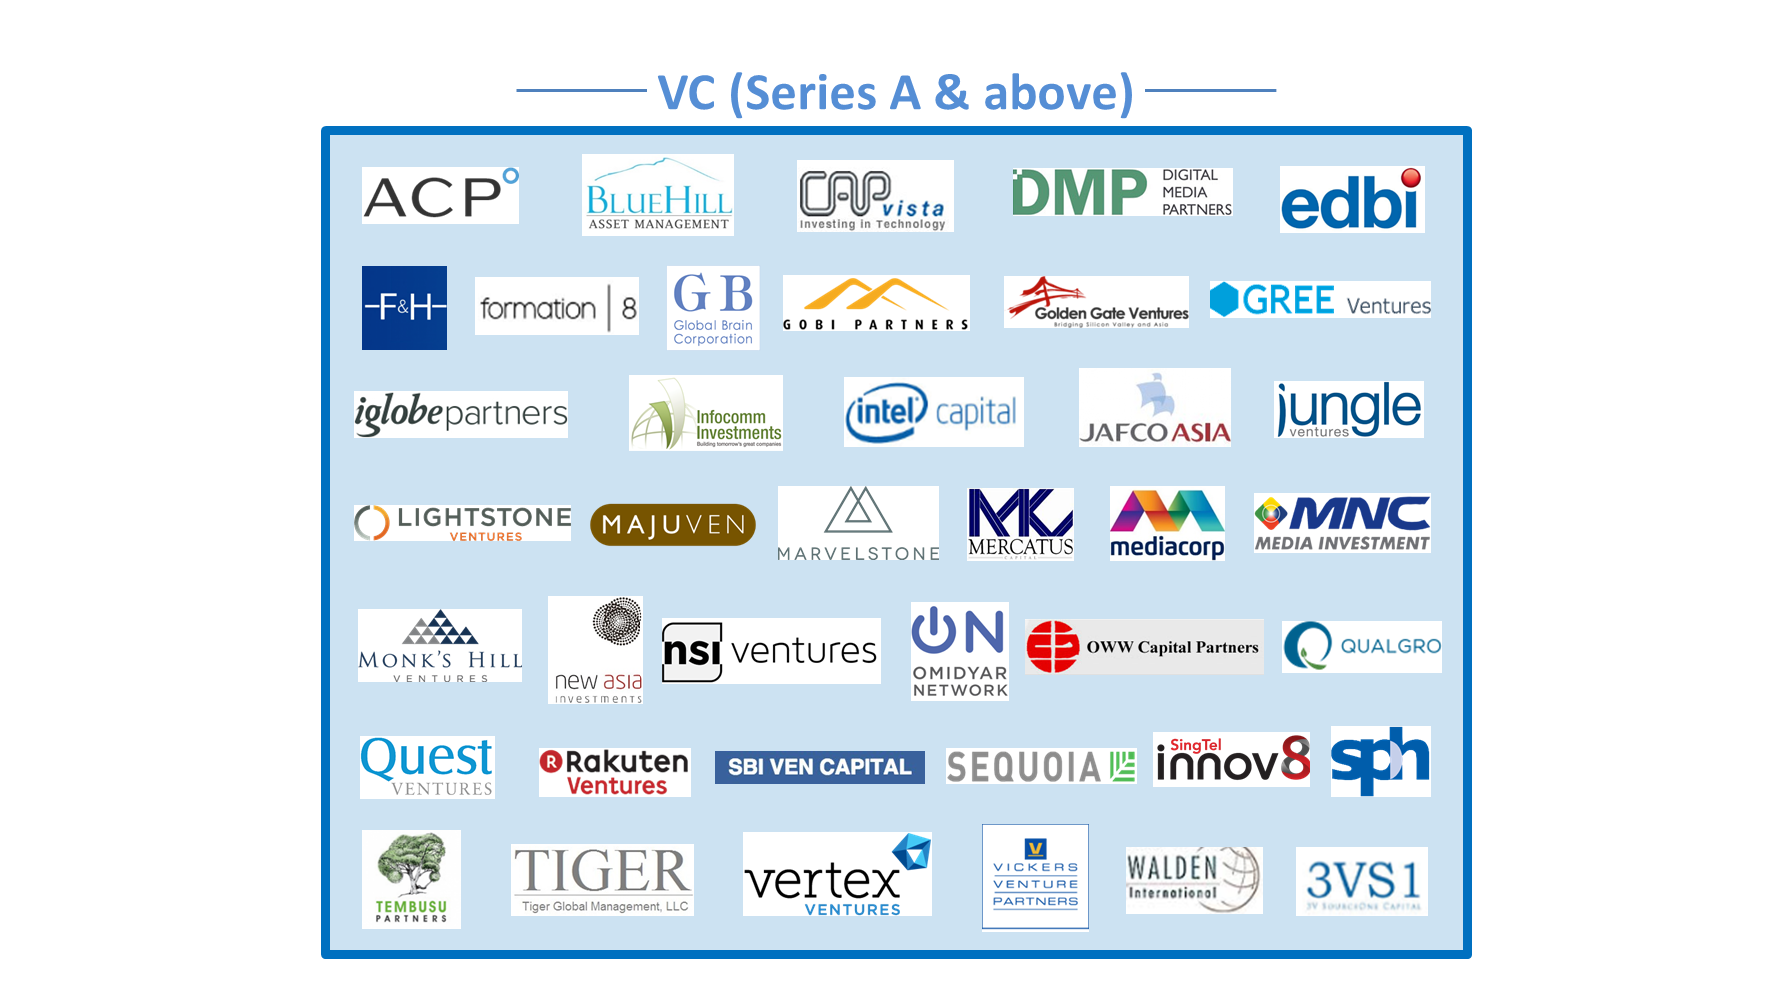 VC (Series A & above) - as at May 2016